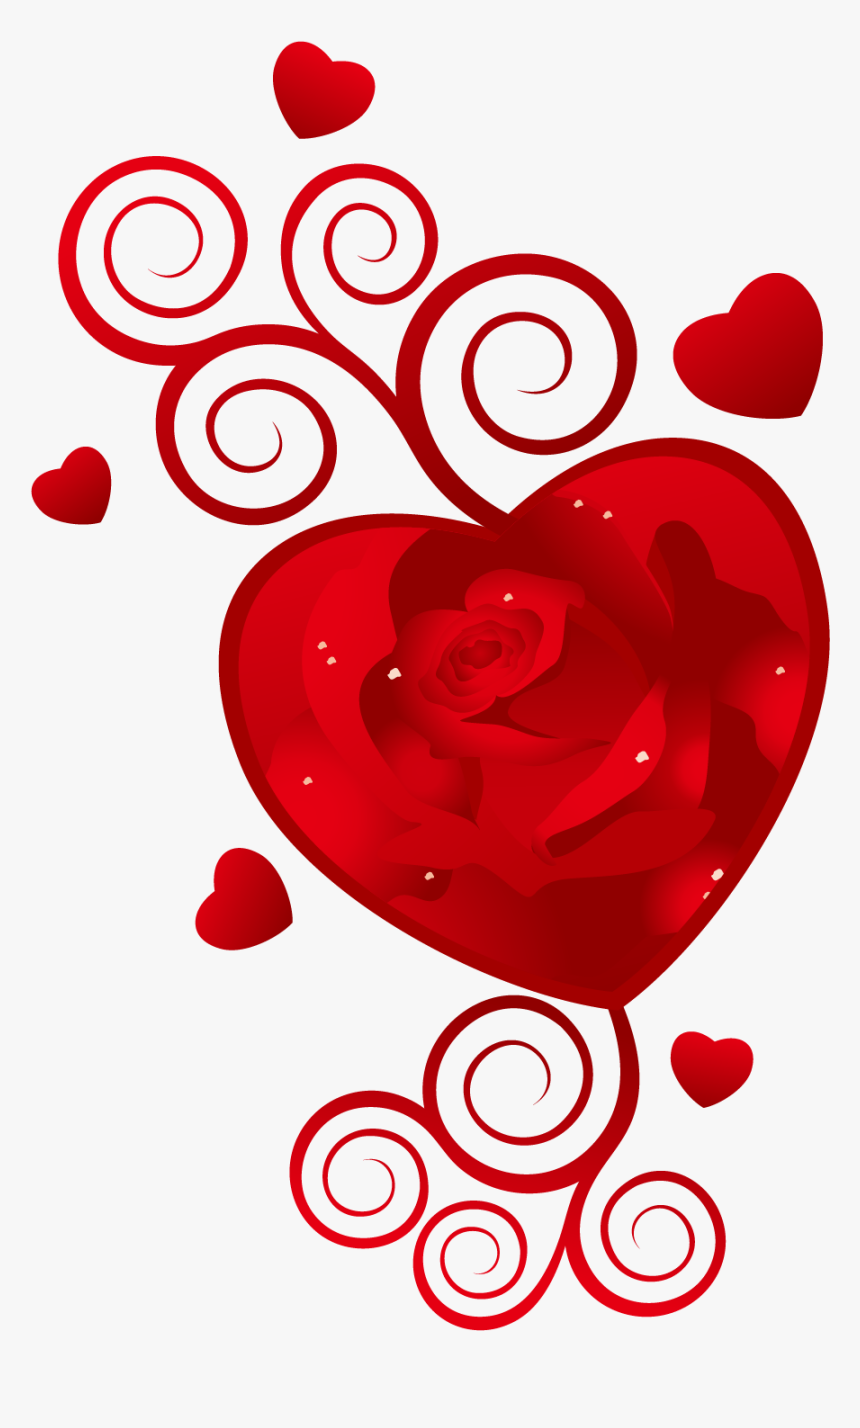 Heart February 14 Wish Valentines Vector Rose Clipart.